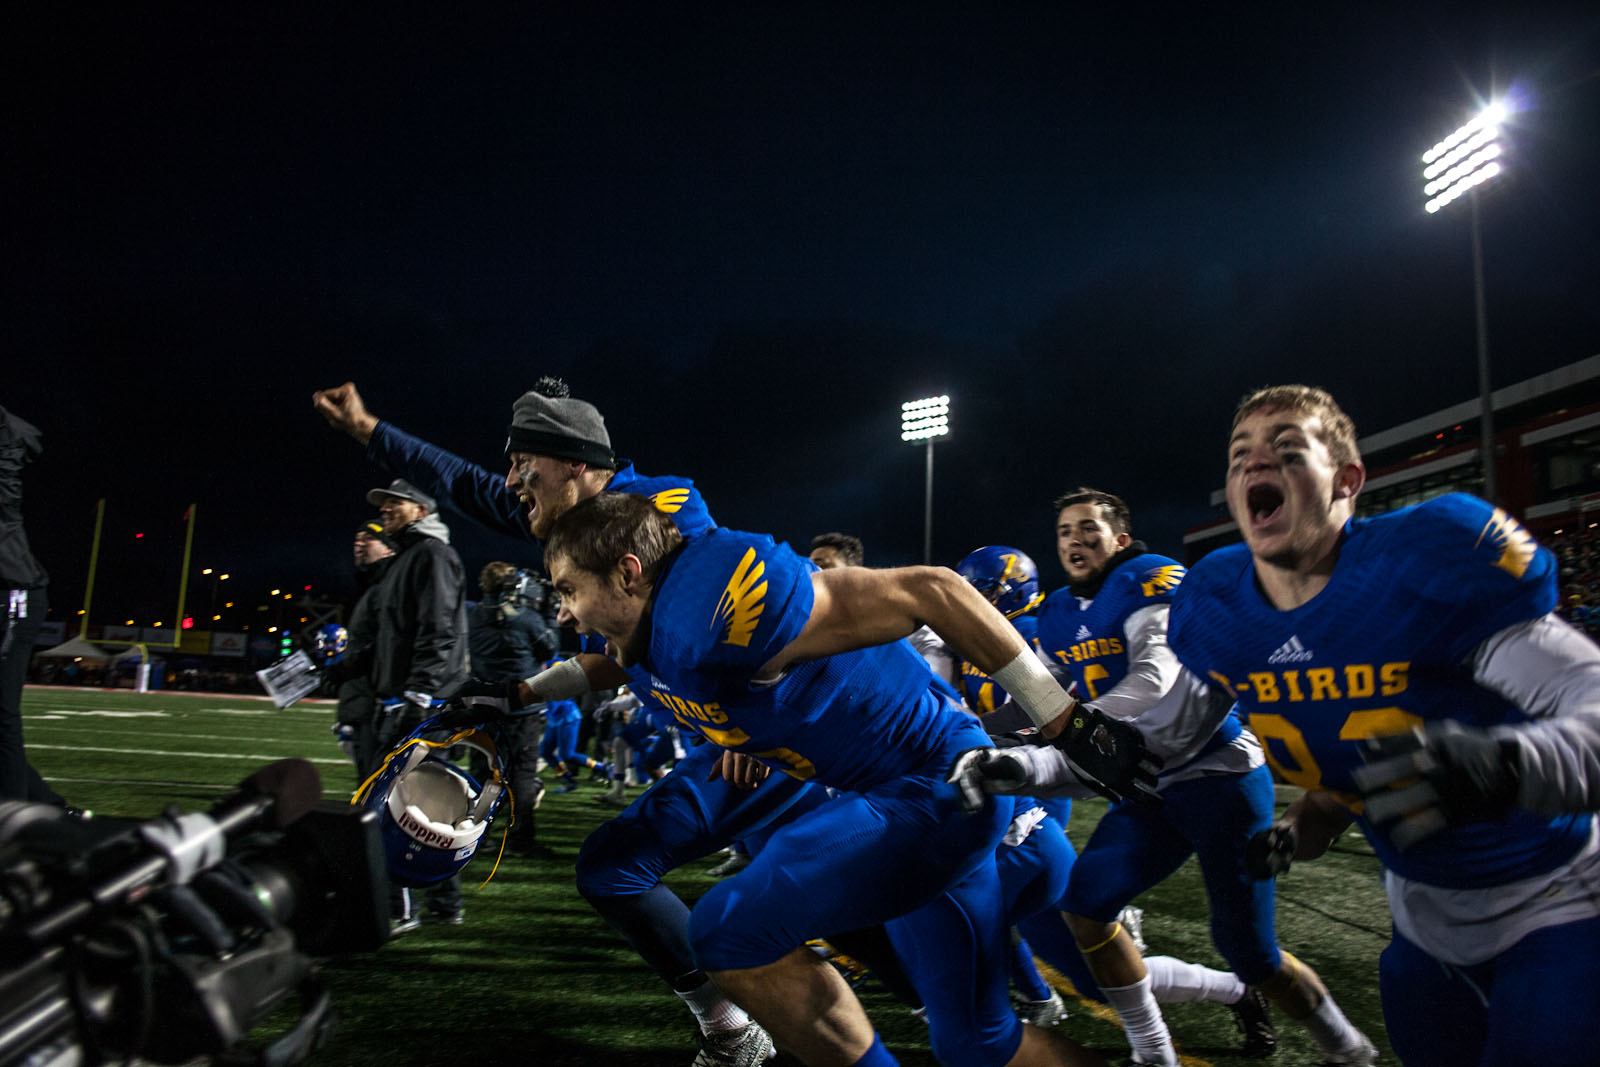 UBC storms the field after winning the Vanier Cup